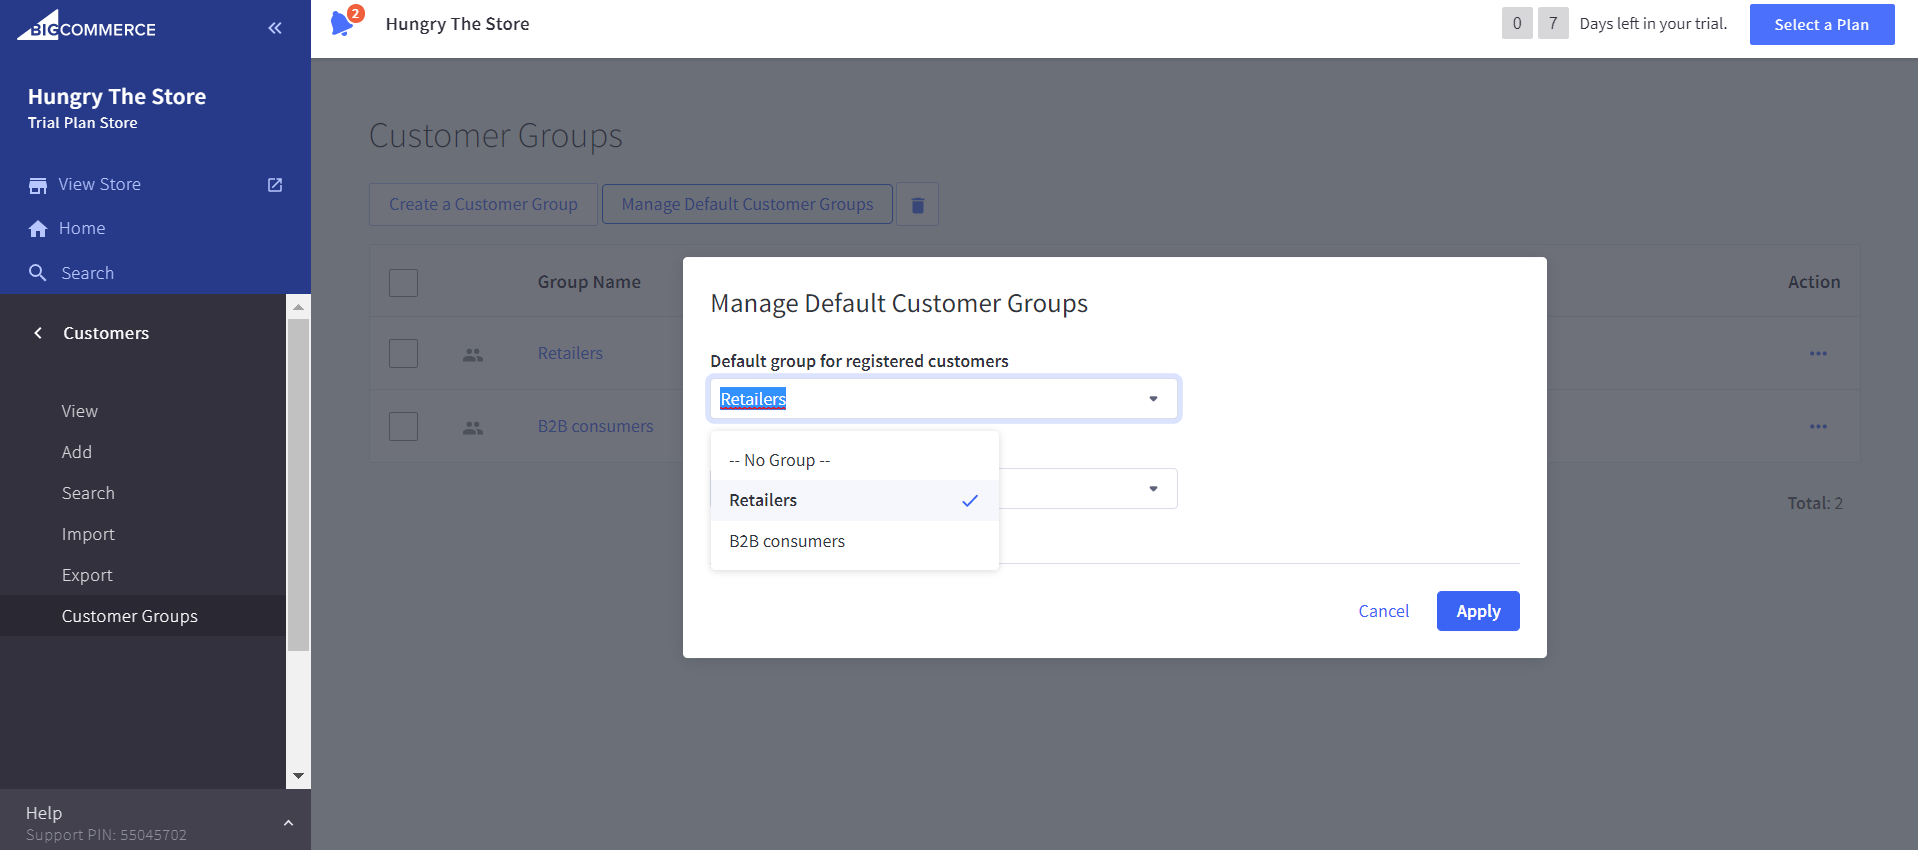 Default groups for registered customers or guests